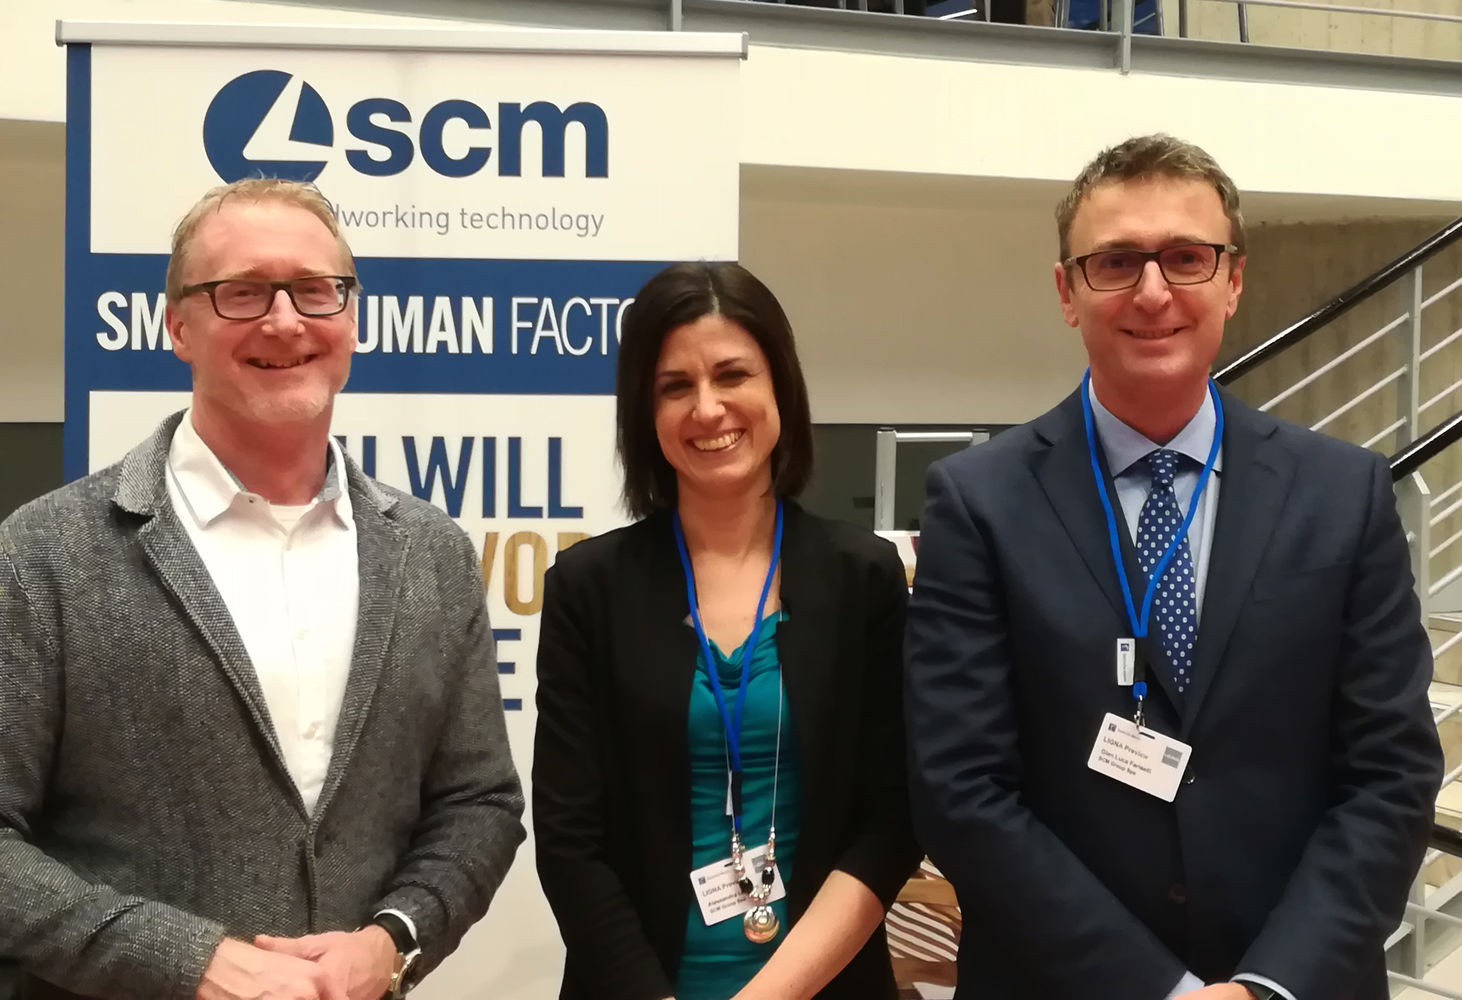 Scm partner di Ligna Preview ad Hannover